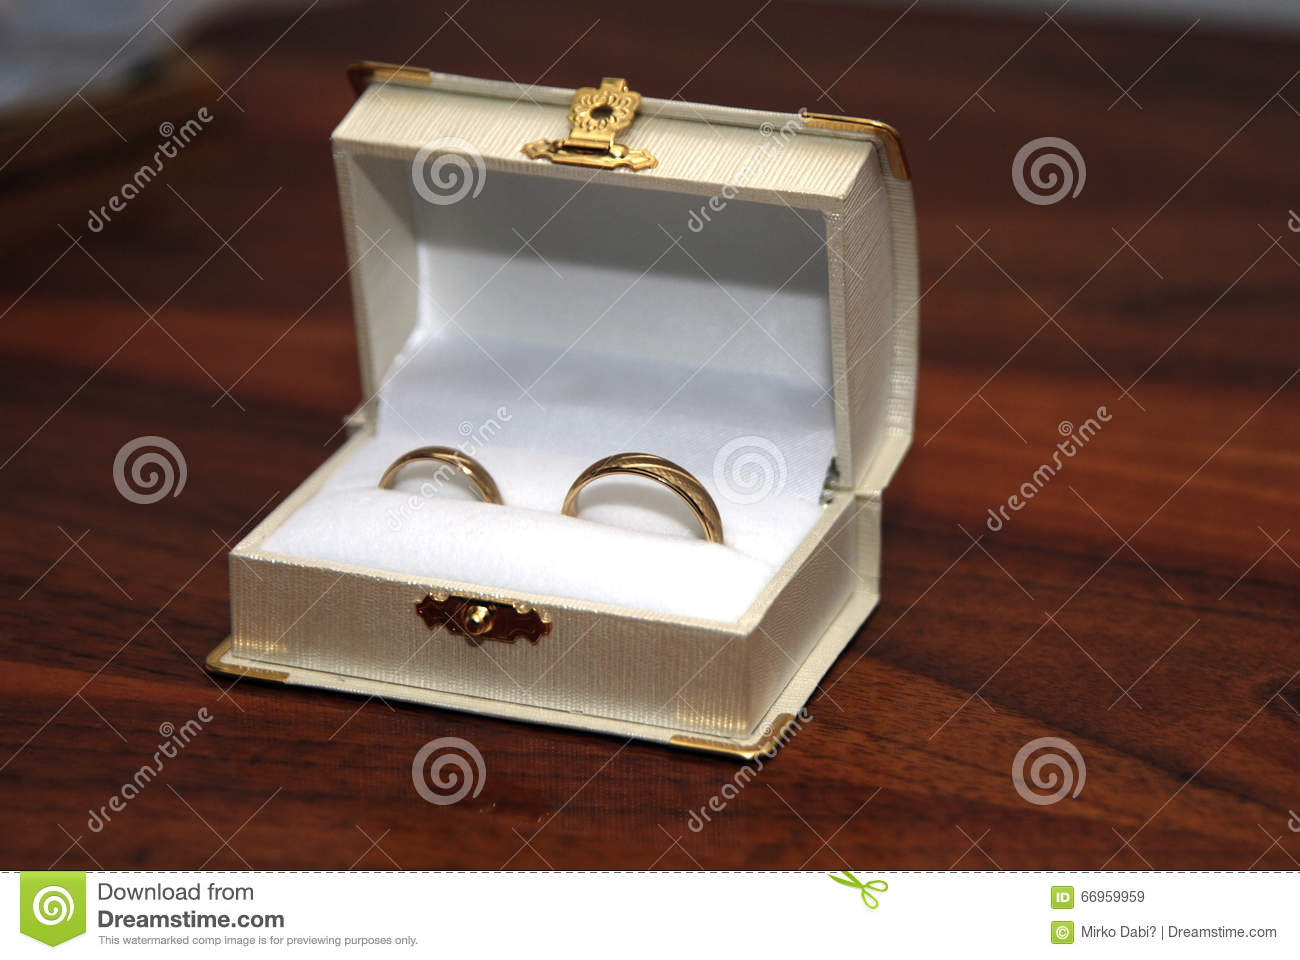 two gold wedding rings in the white ring box - Wedding Ring Box